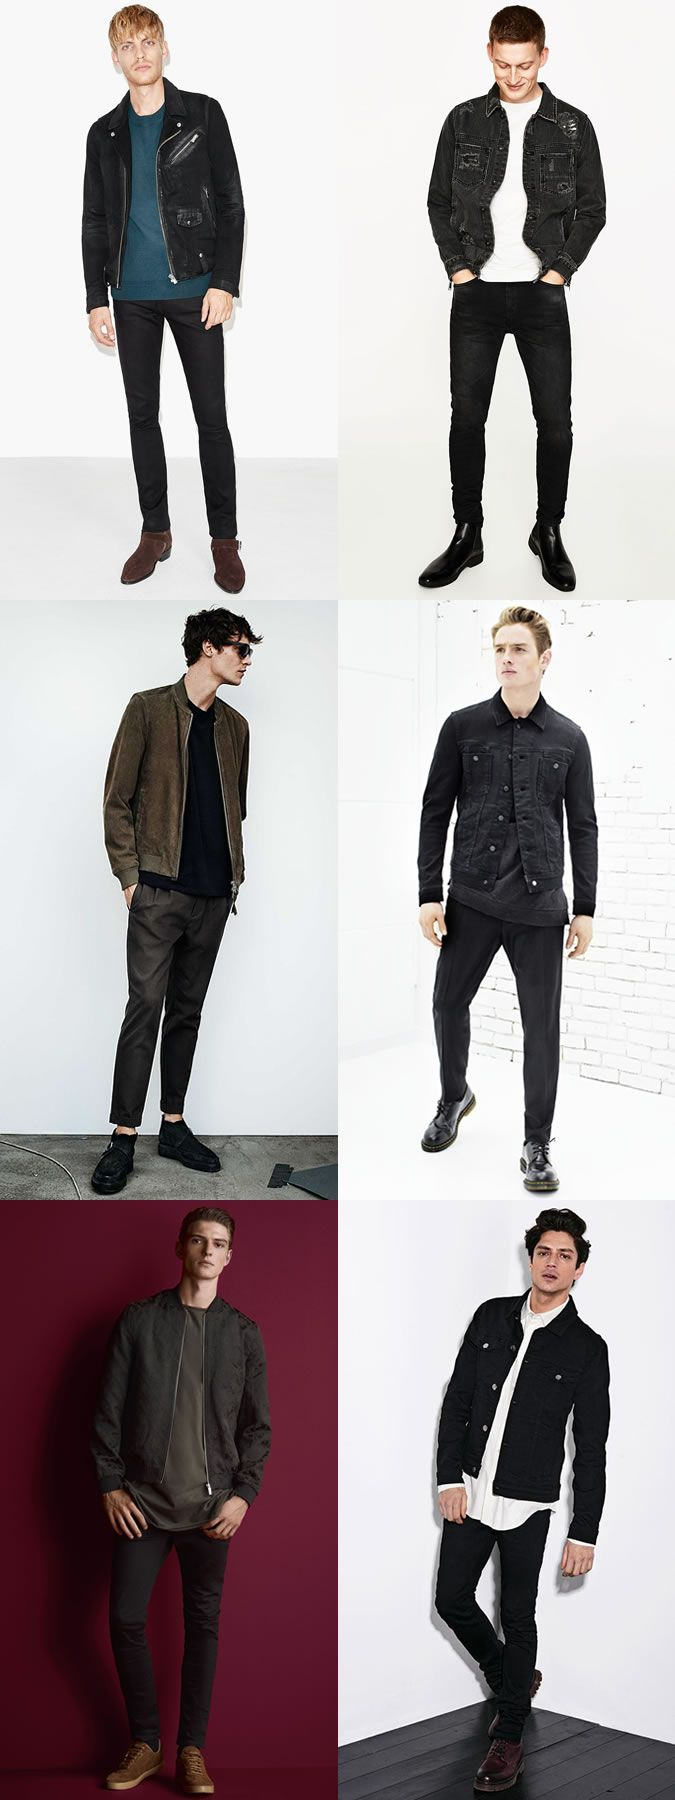 9549ce5e661 Men s Nightclub Outfit Inspiration Lookbook